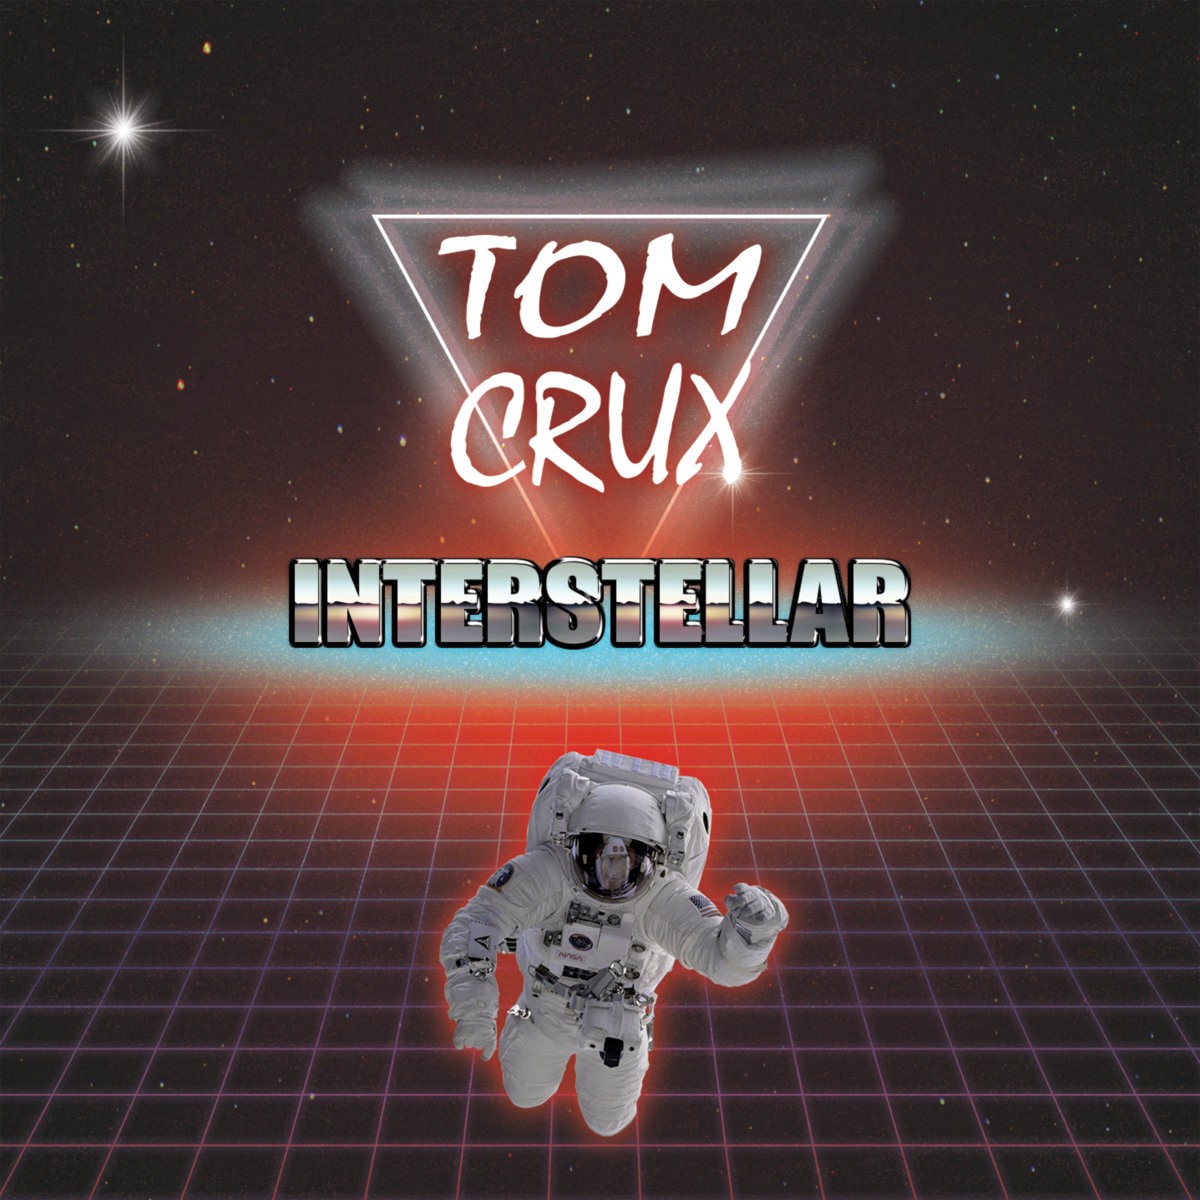 Tom CruxInterstellar-Tom Crux-Art